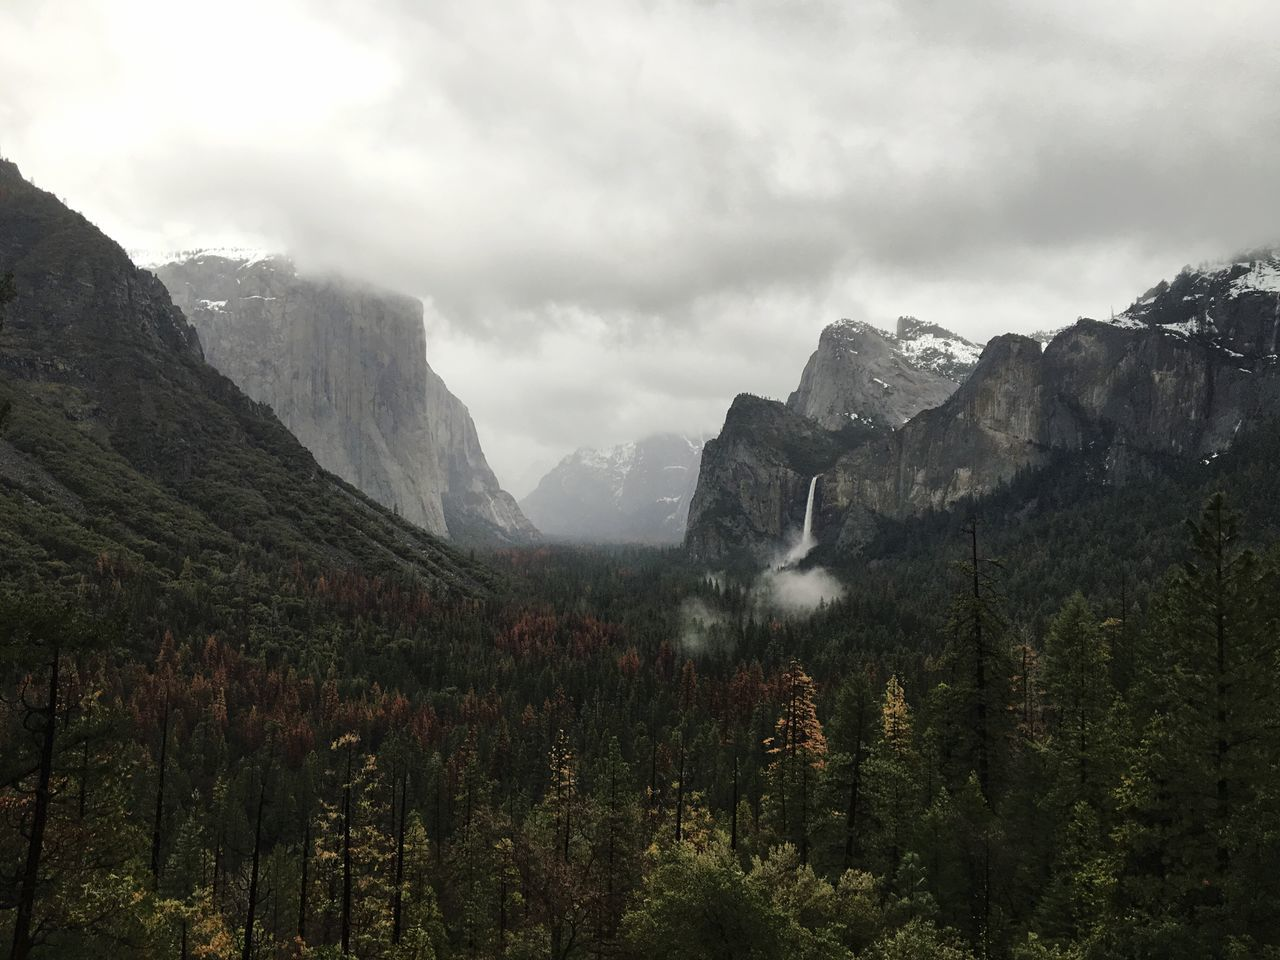 Yosemite National Park Yosemite Valley Tunnel View El Capitan Waterfall Mountain Sky Nature Landscape Mountain Range Beauty In Nature No People Scenery Outdoors Day Clouds Rainy IPhoneography Iphonephotography Roadtrip Spring